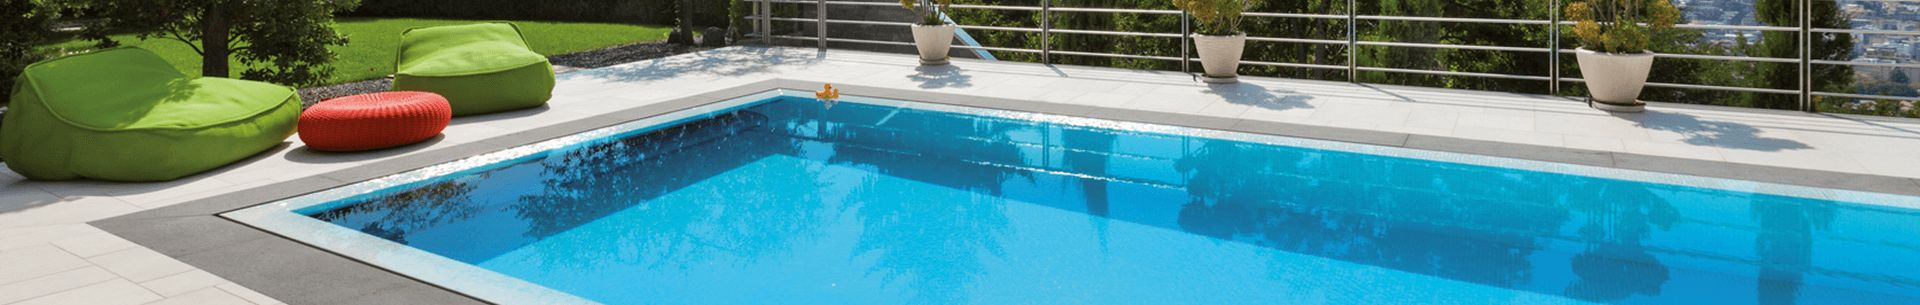 Raccords pvc et tuyaux cash piscines for Cash piscine kit